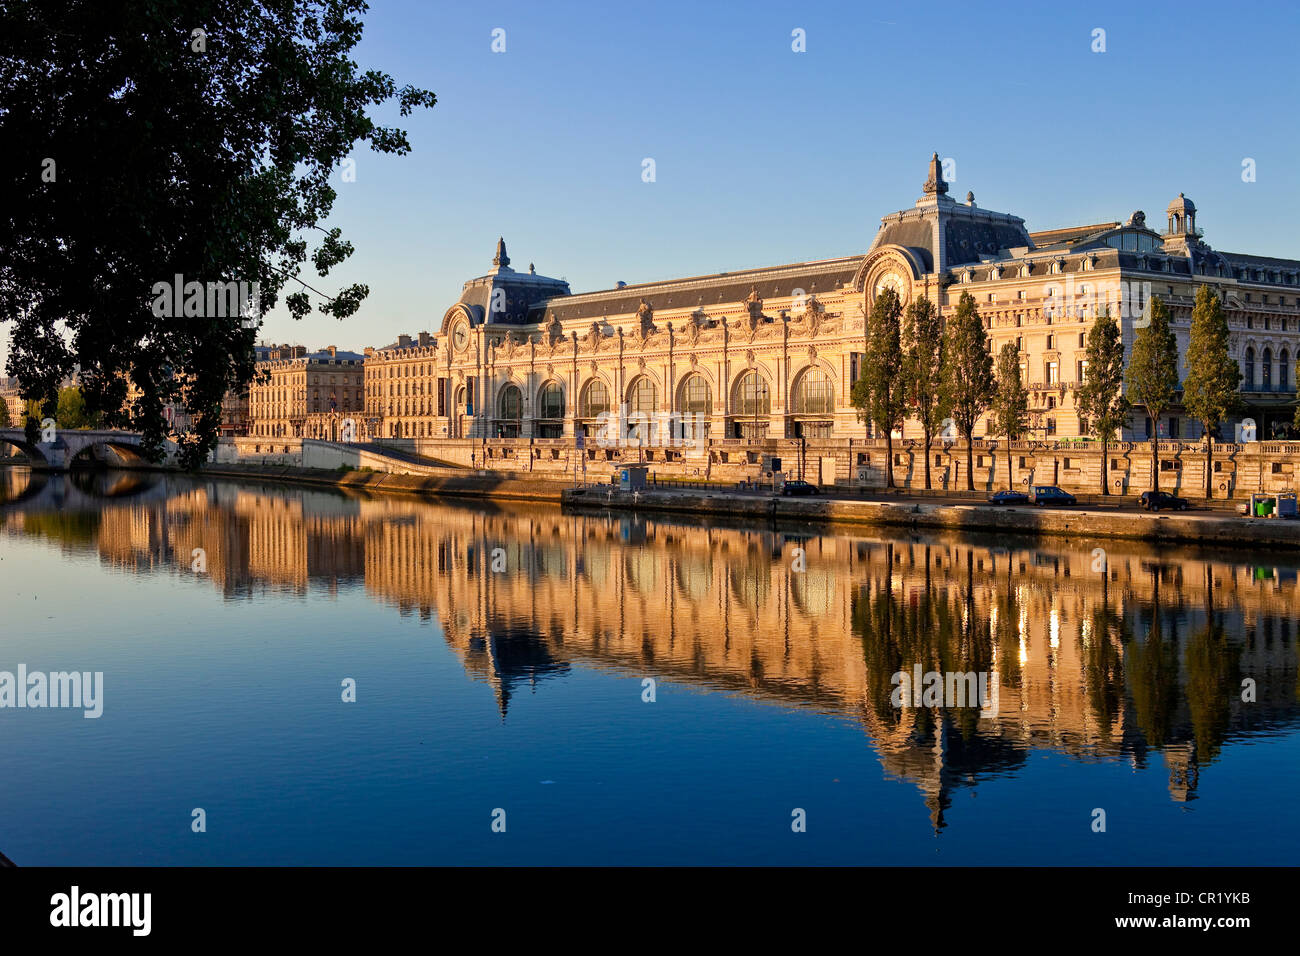 France, Paris, Seine River banks UNESCO World Heritage, musee d'Orsay - Stock Image